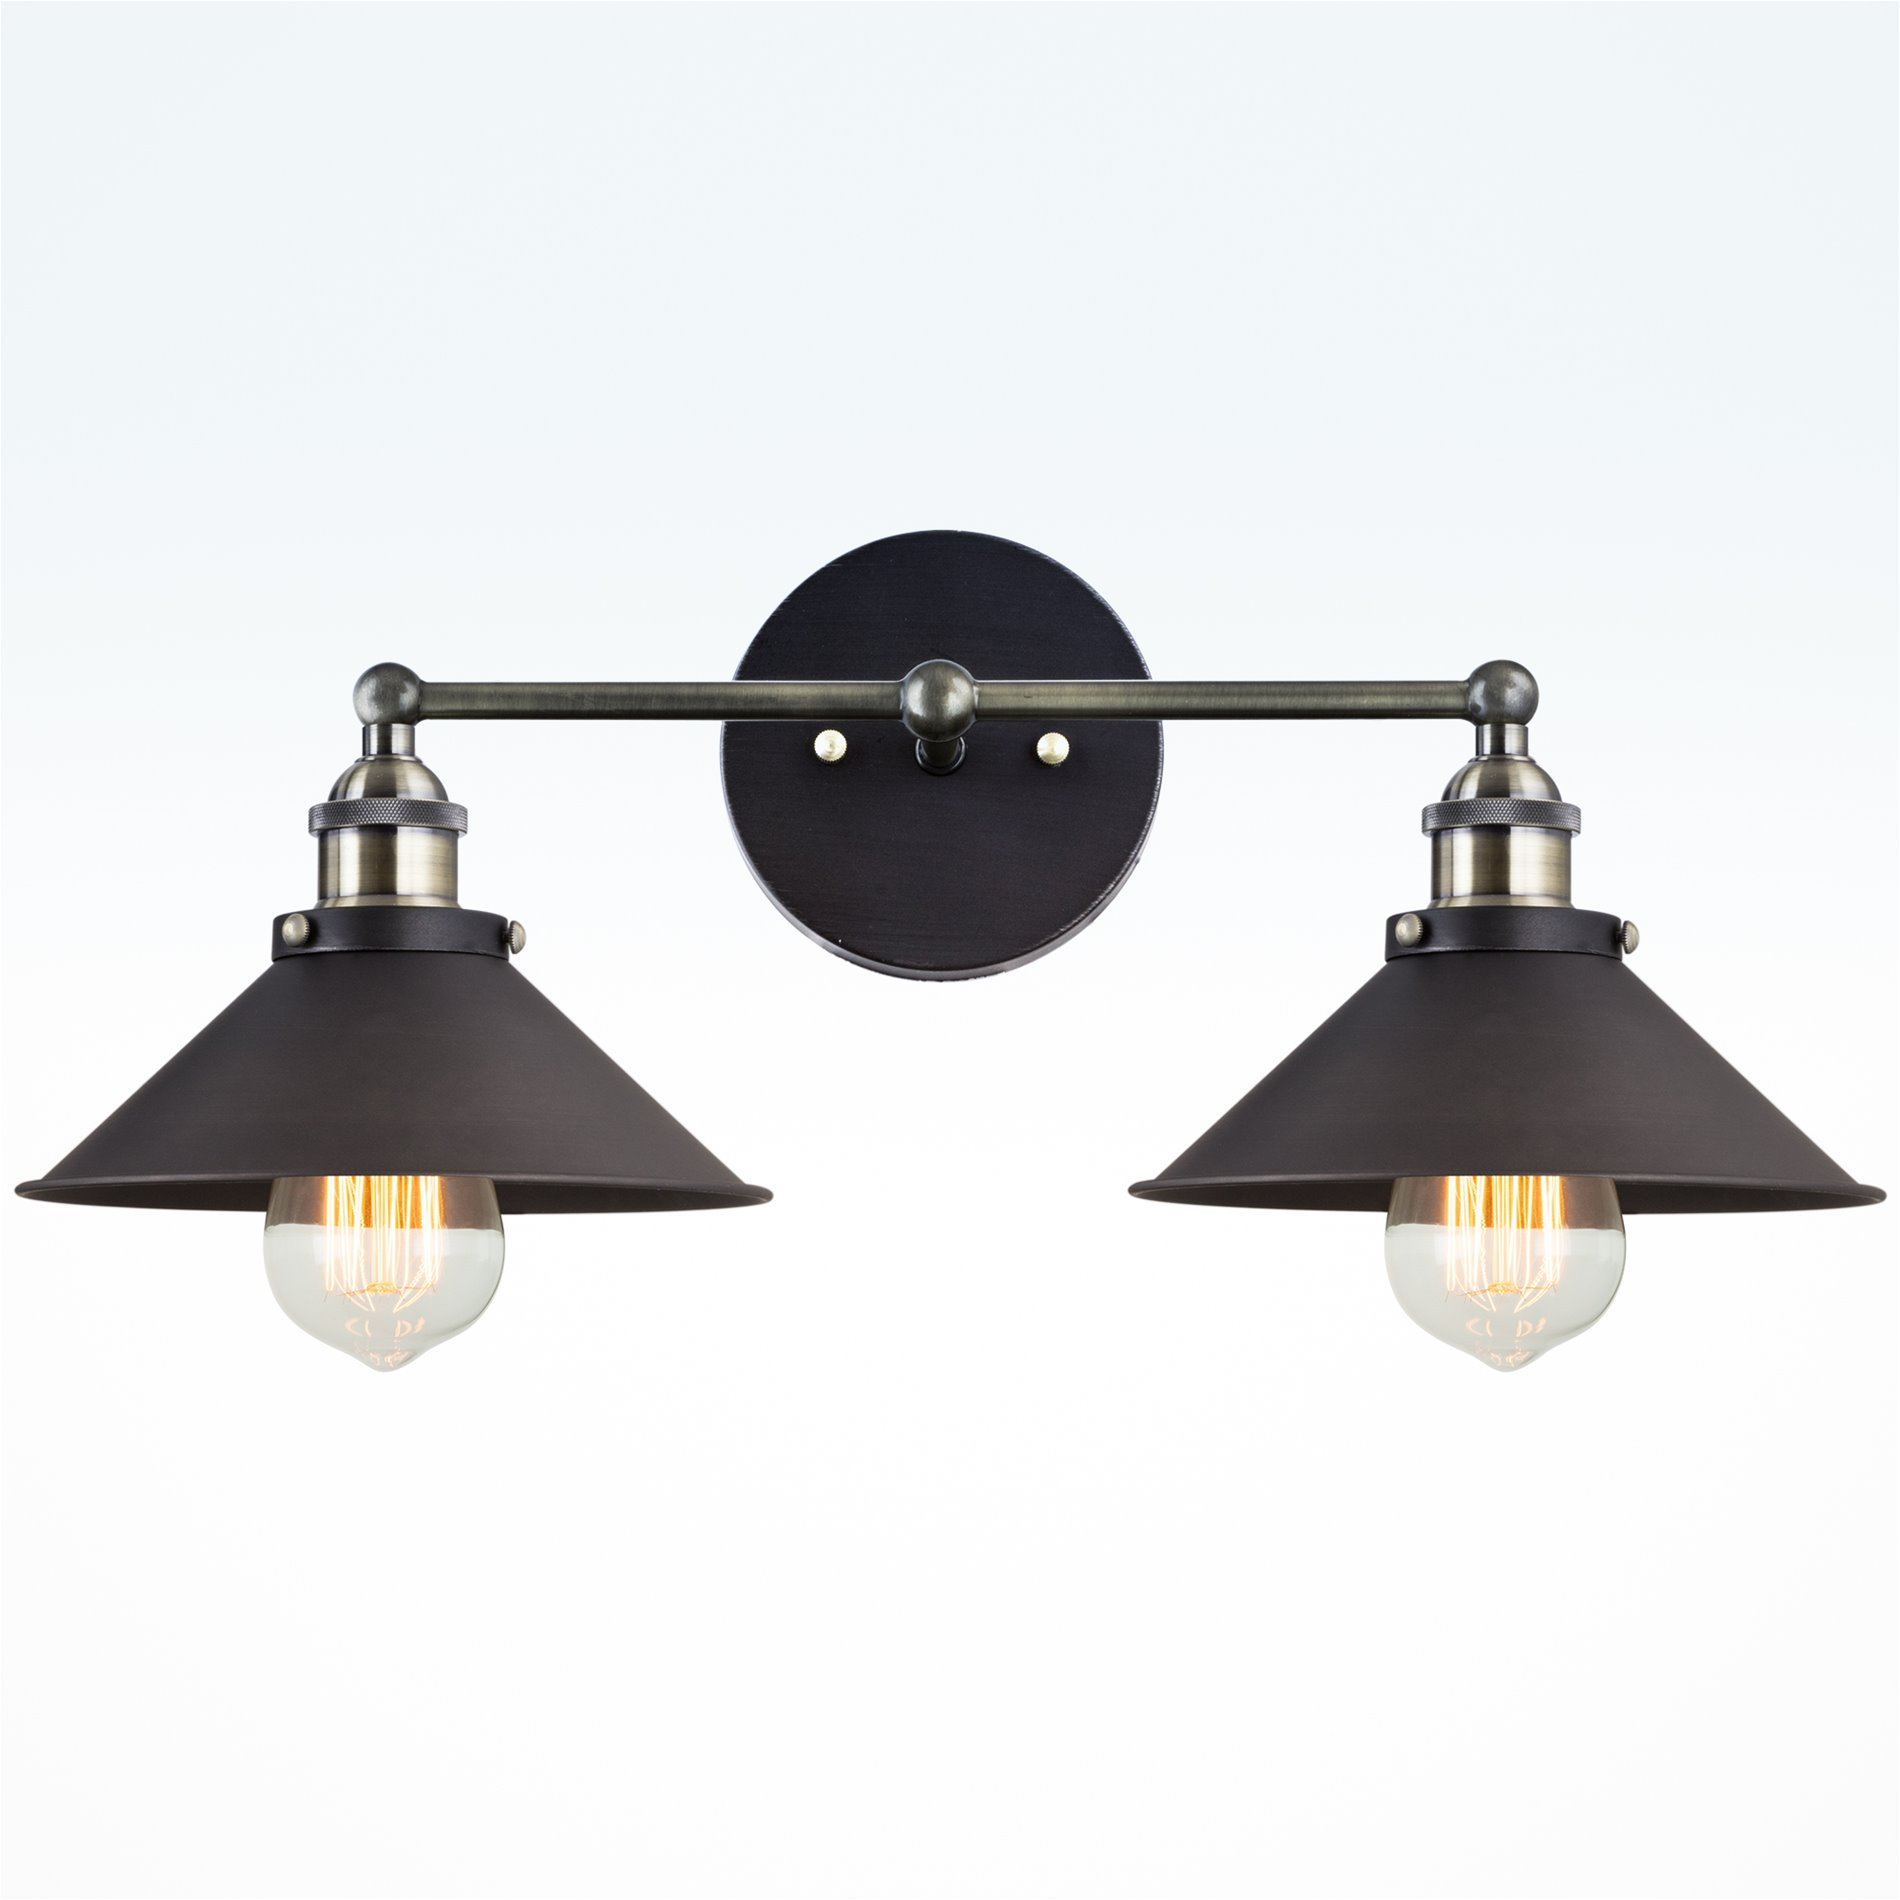 Kira Home Indie 19'' Mid-Century Industrial 2-Light Black Wall Sconce, Brushed Black Finish by Kira Home (Image #2)